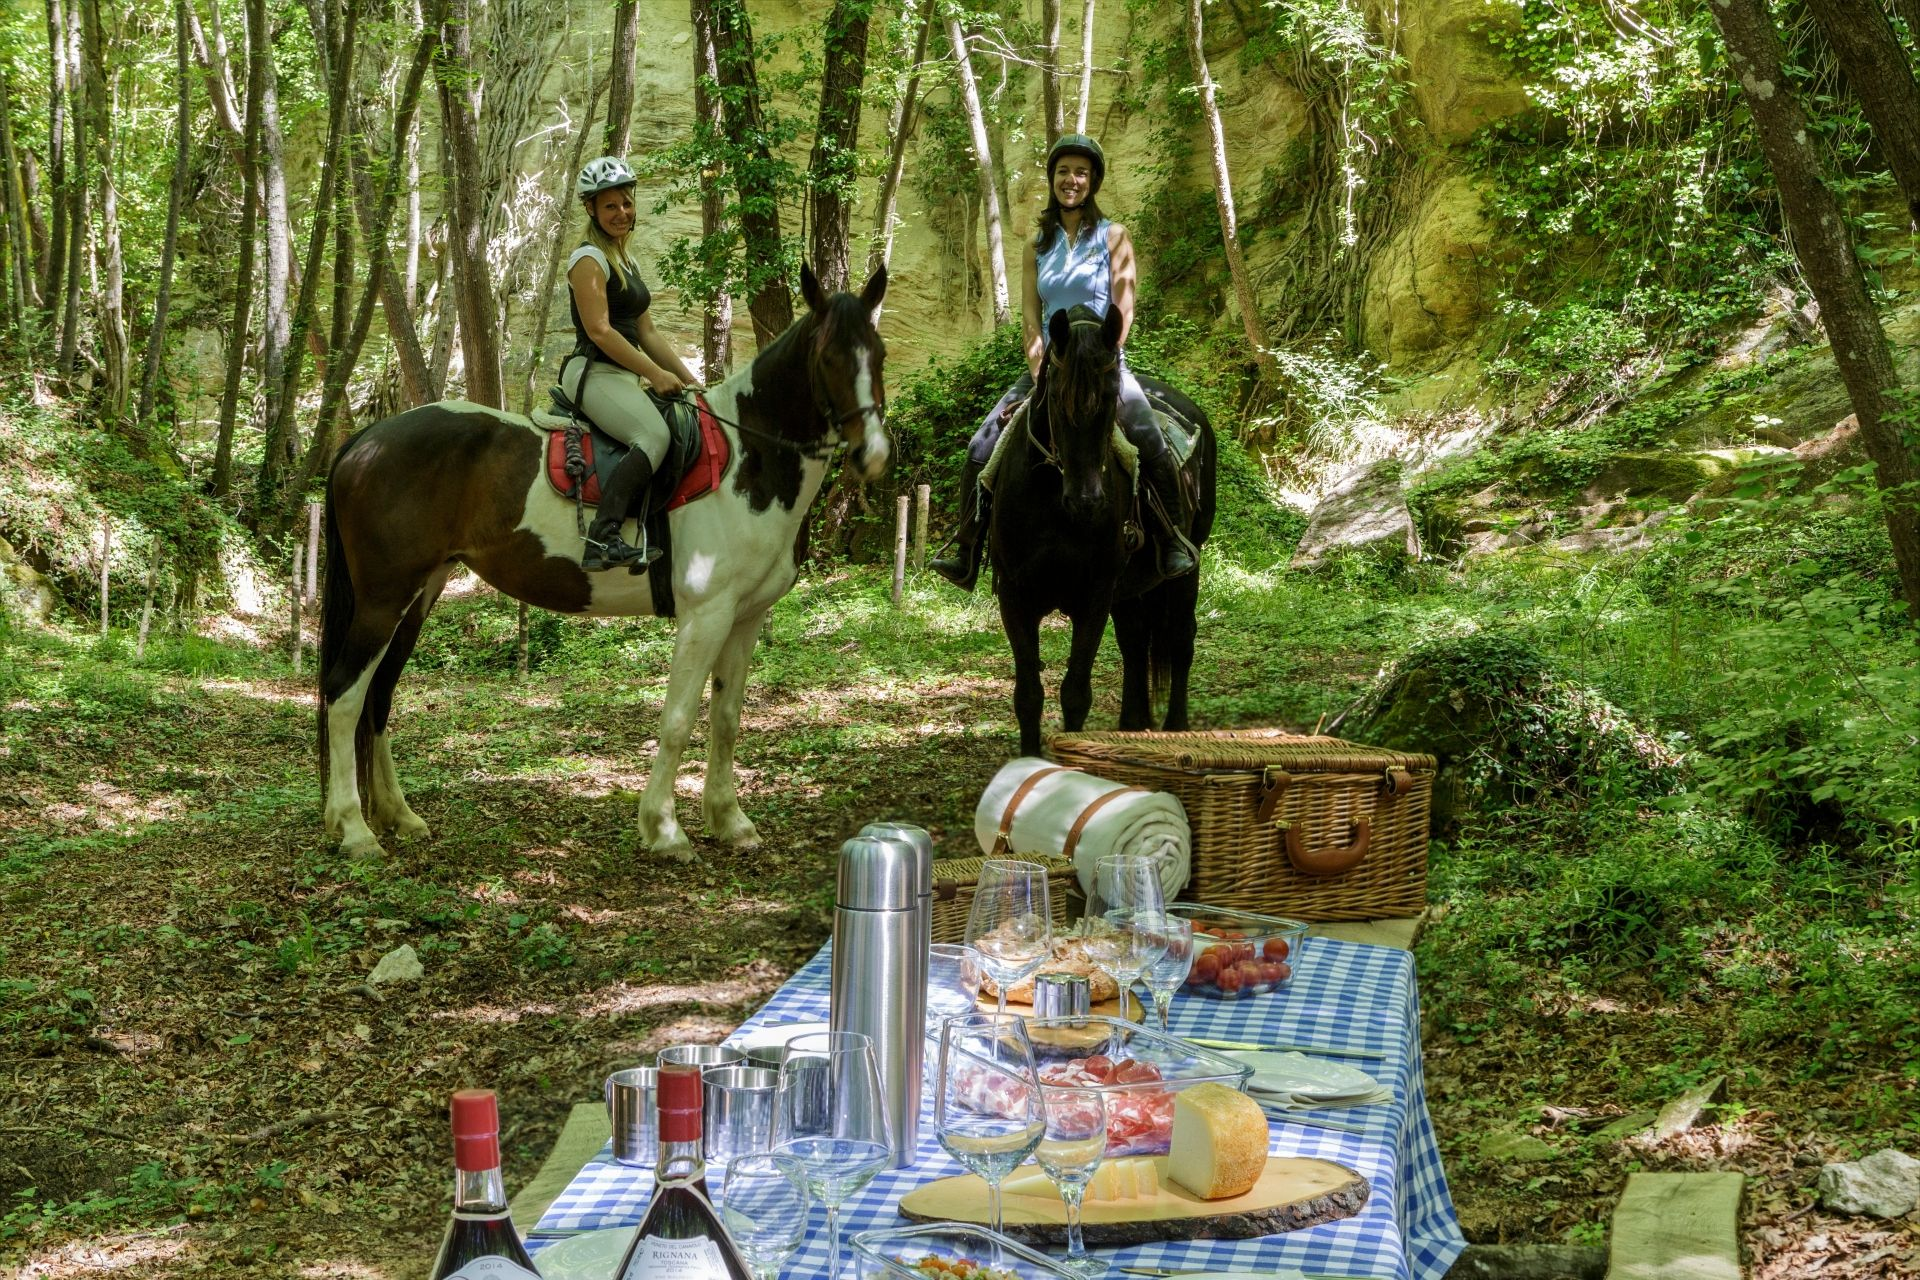 Riding and Picnic in the wood